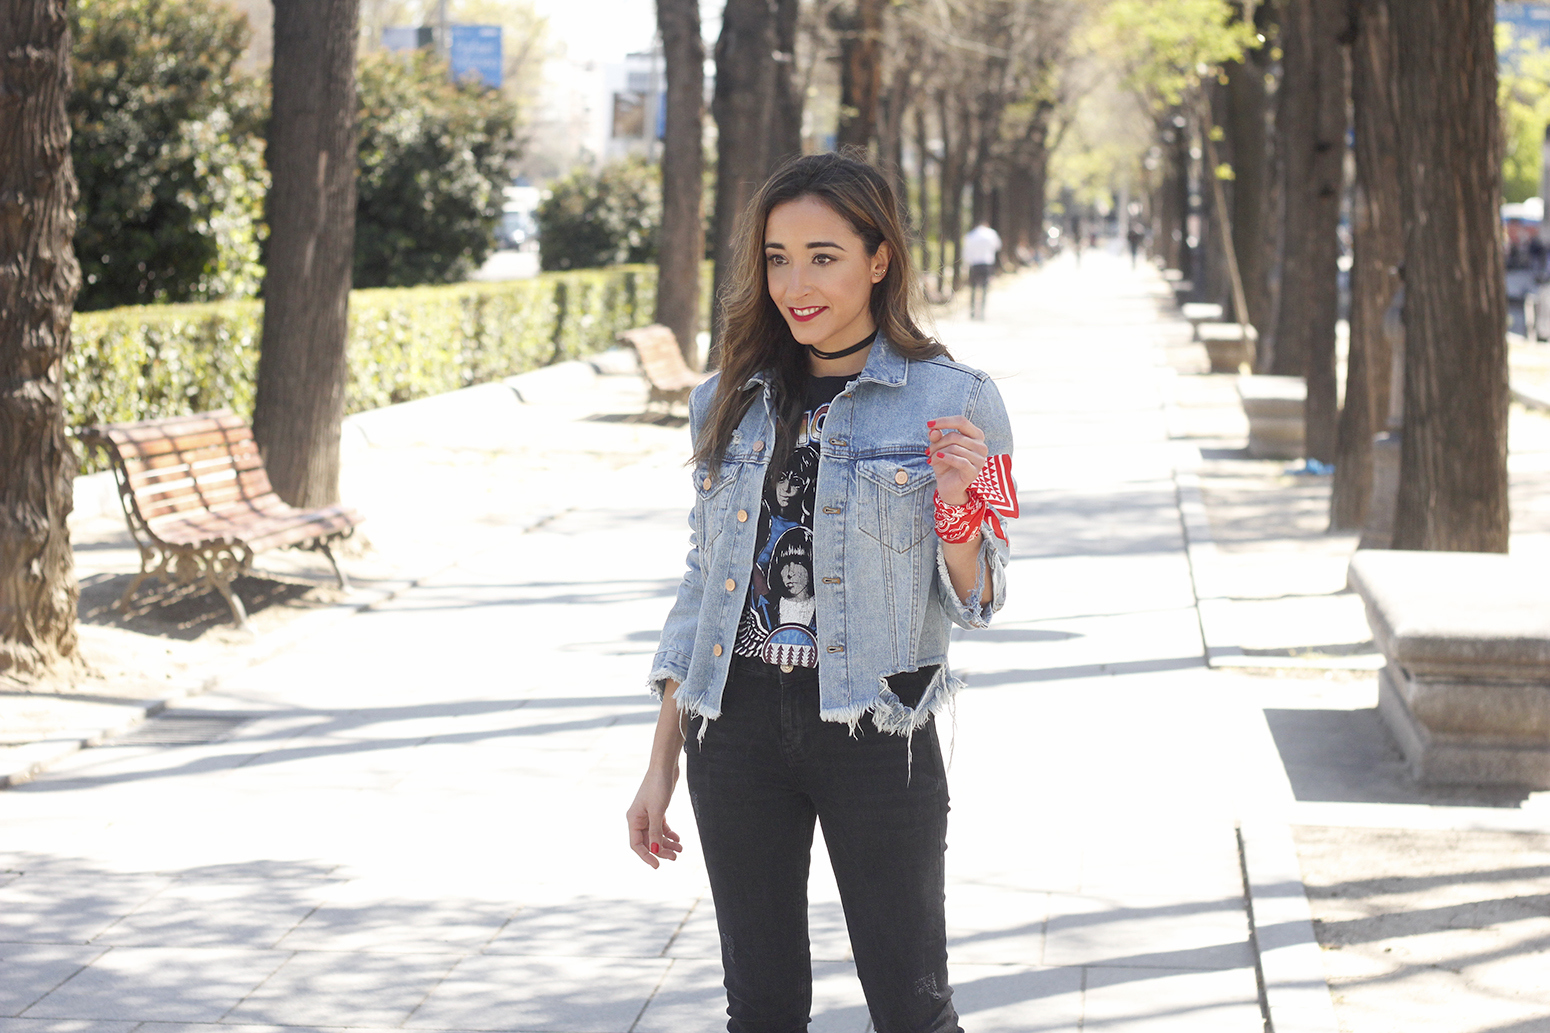 Ripped denim jacket black jeans ramones t-shirt heels style outfit fashion14